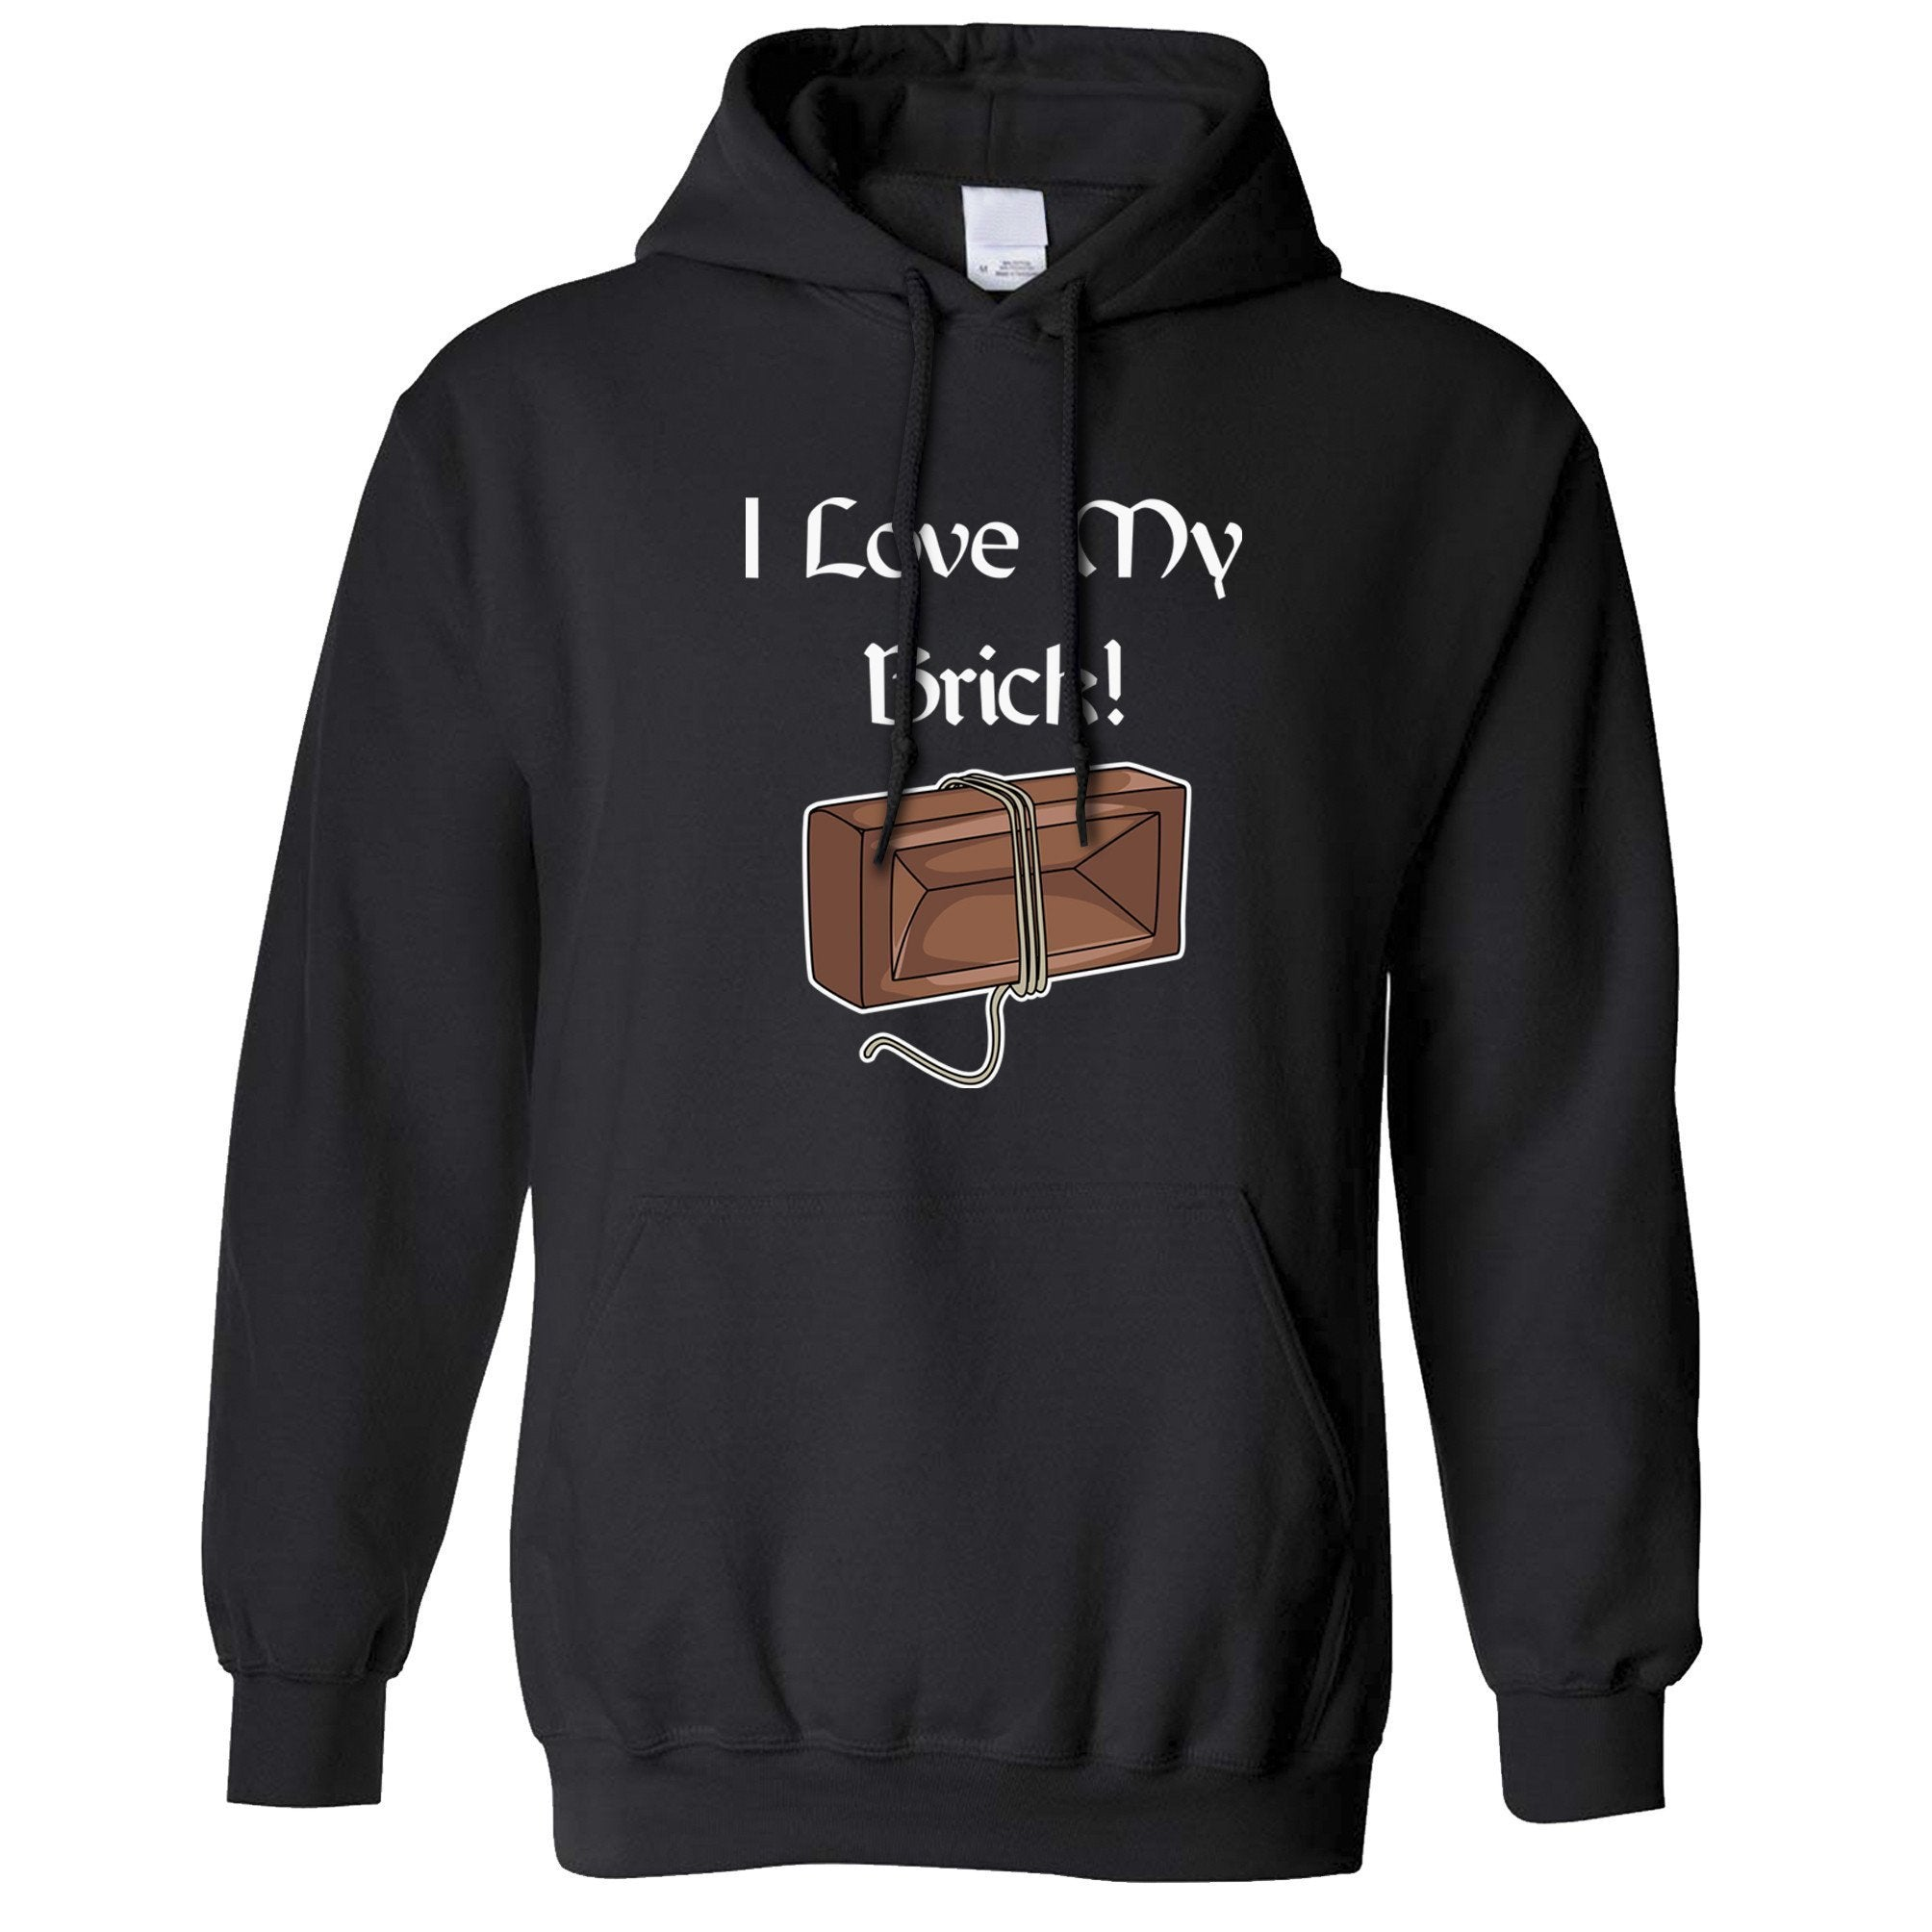 Novelty TV Parody Hoodie I Love My Brick! Quote Hooded Jumper